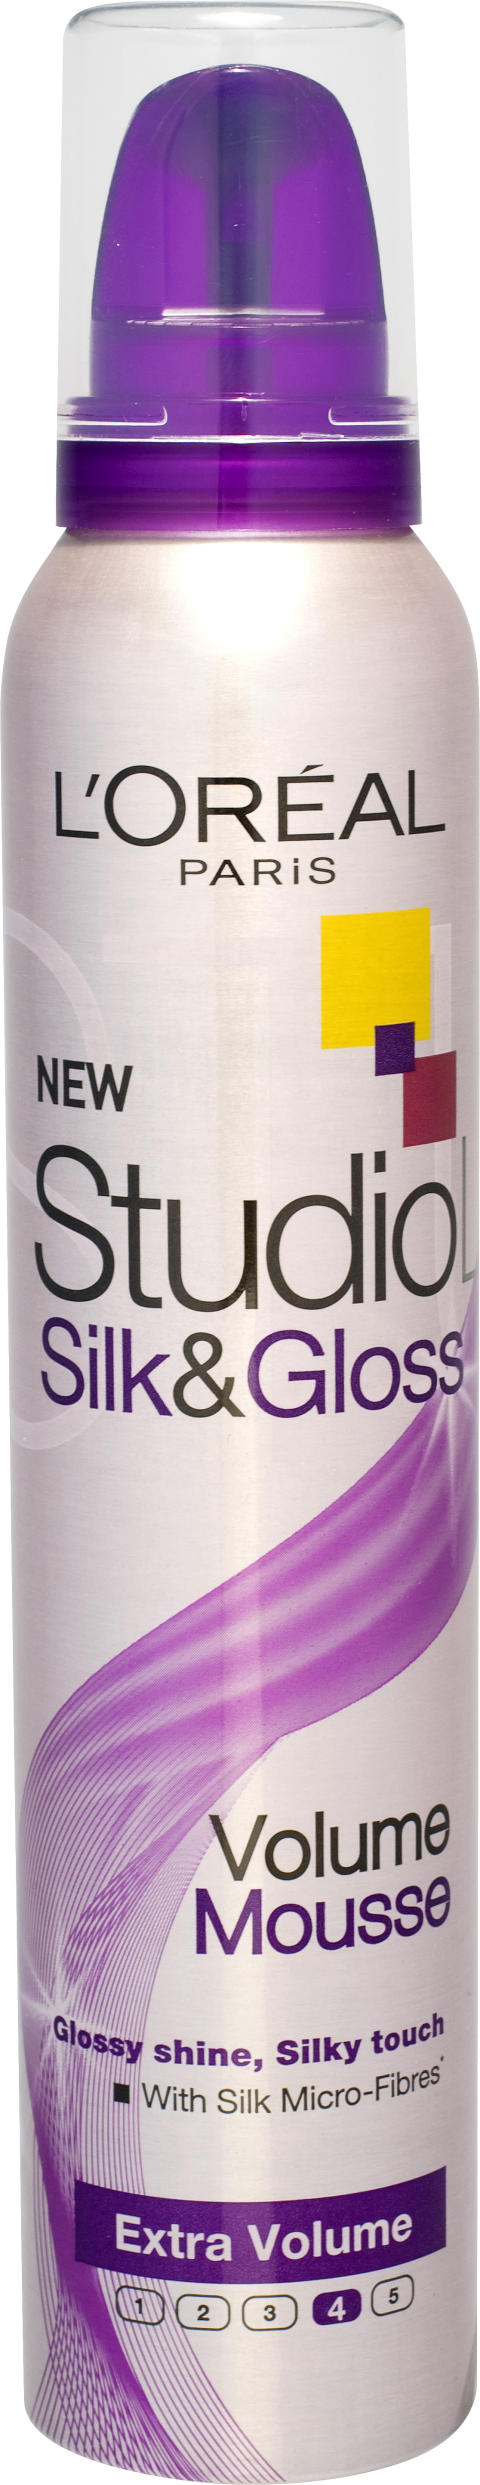 Studio Line Silk & Gloss Volume Mousse